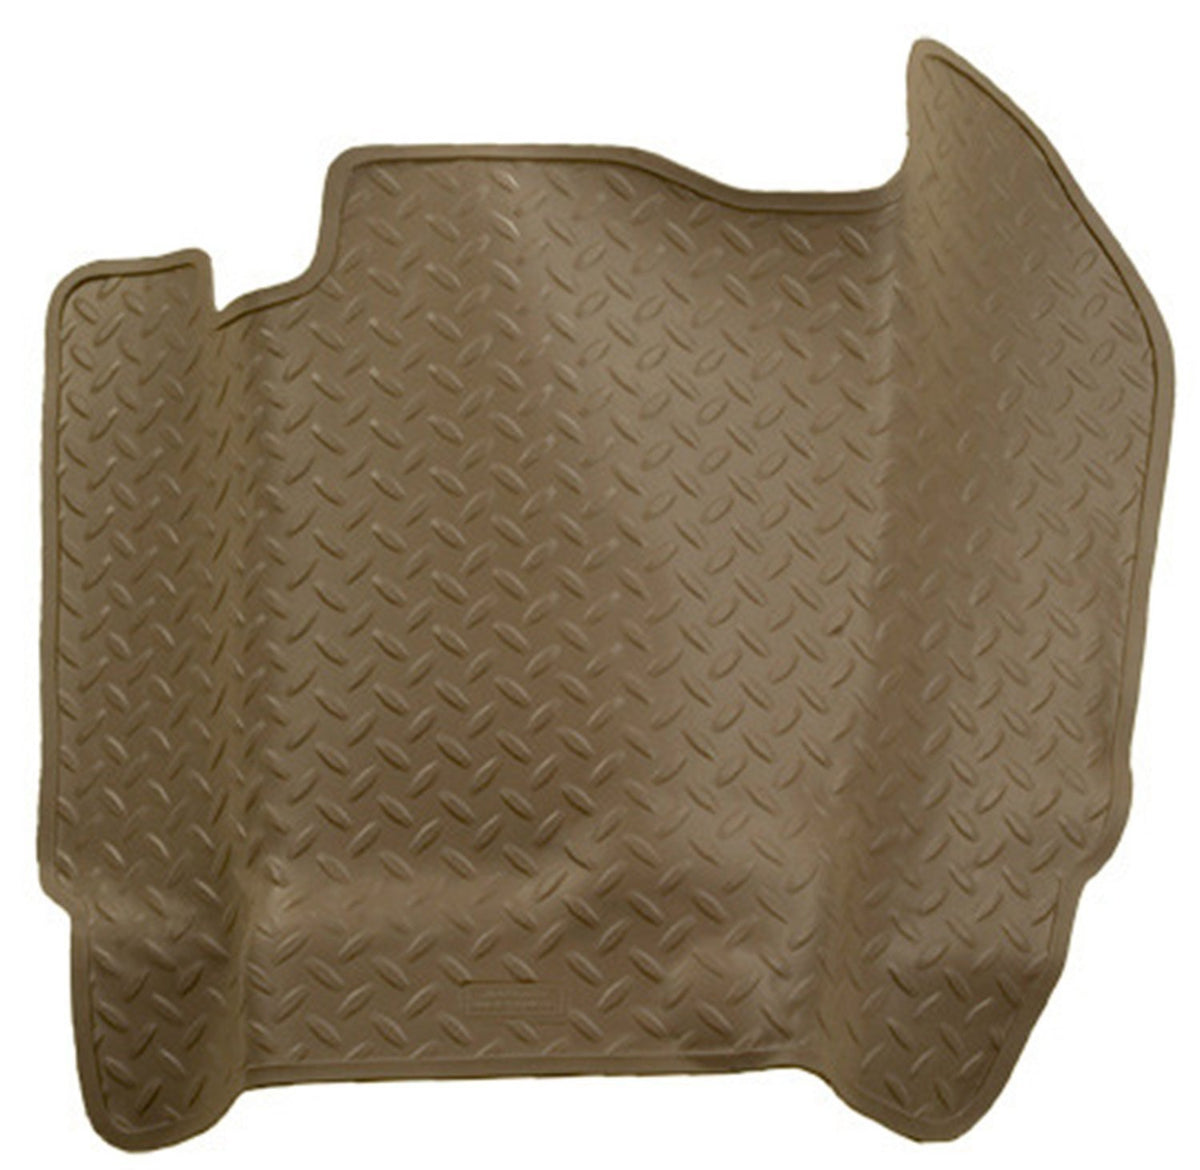 2000-2005 Ford F-250-F-550 HD Classic Style Center Hump Tan Floor Liner (Auto Trans.) by Husky Liners (82453)